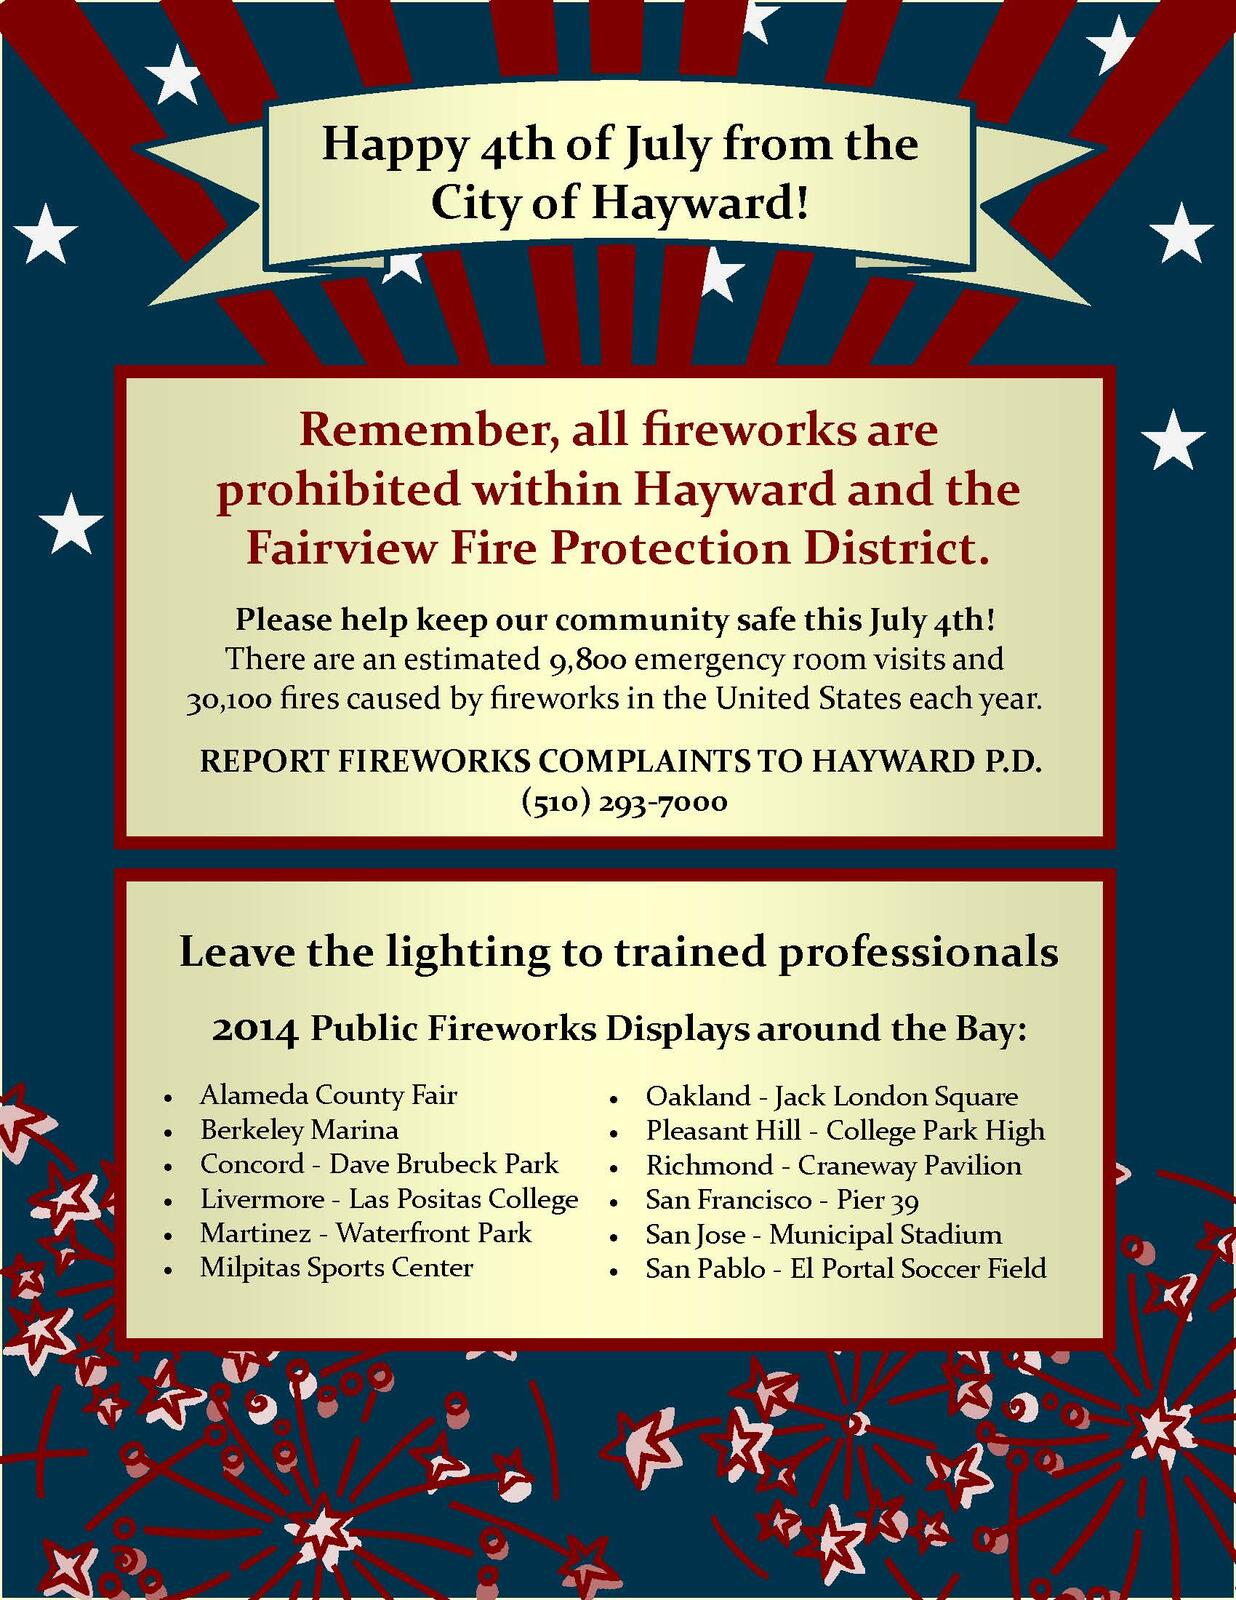 ATTENTION! ALL FIREWORKS ARE PROHIBITED IN HAYWARD (Hayward